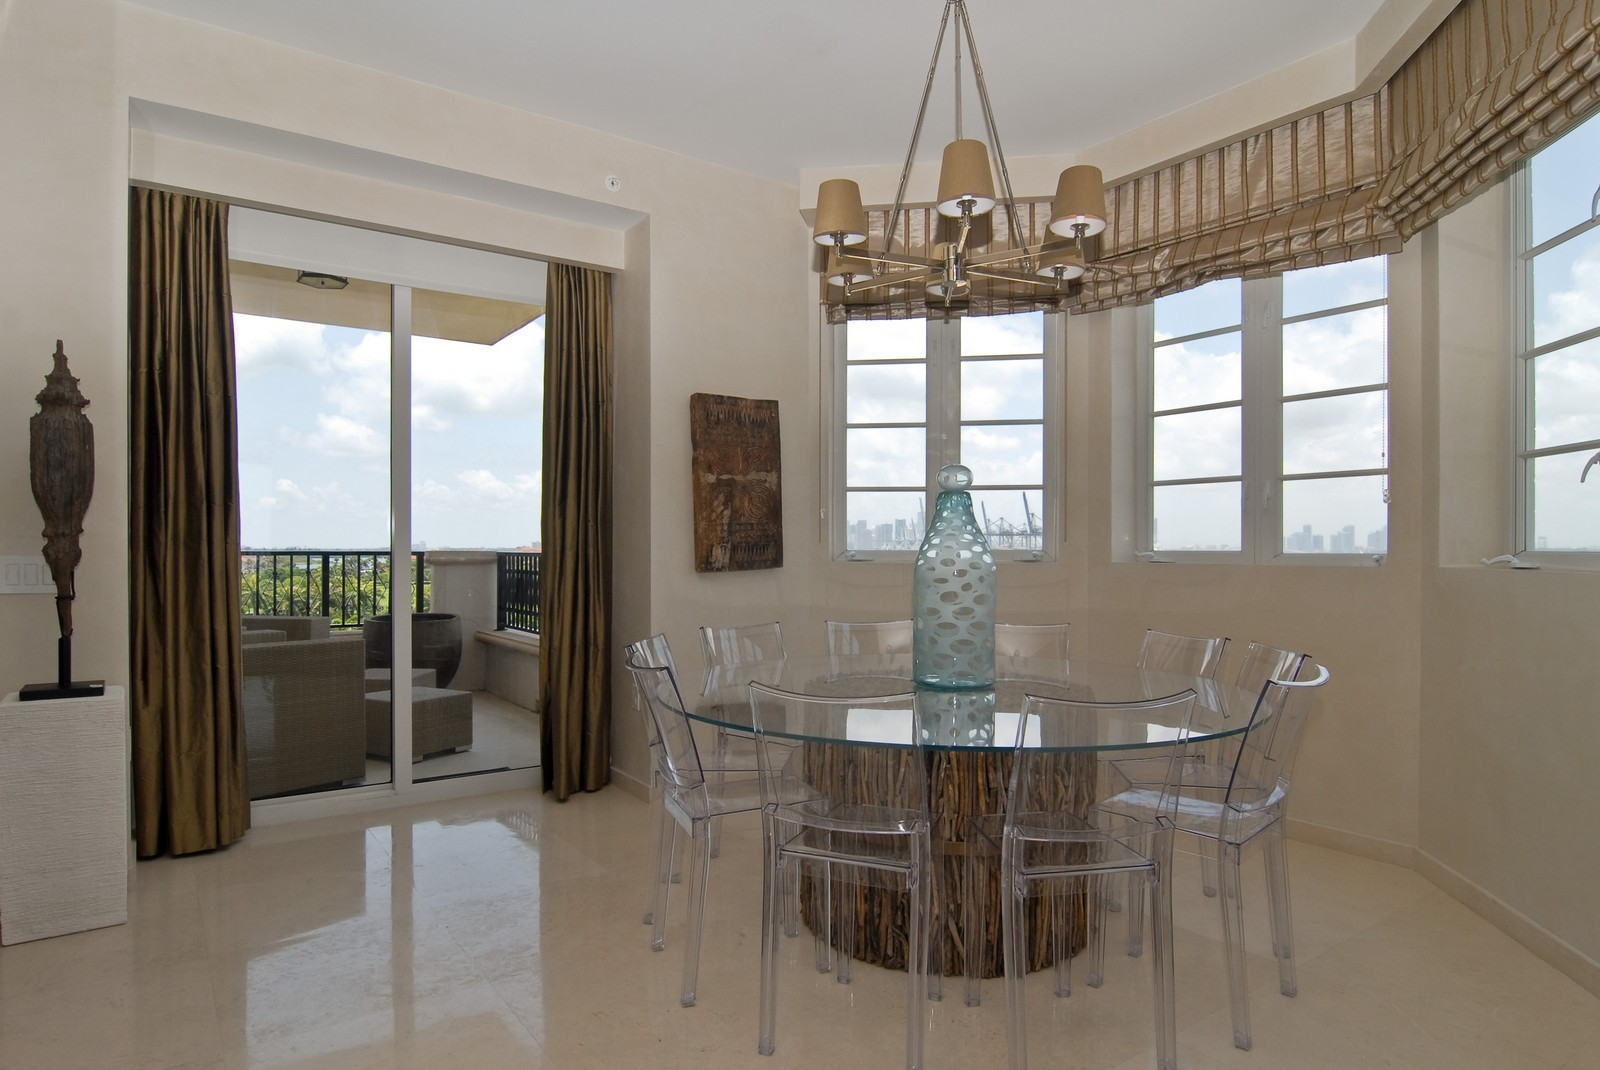 Real Estate Photography - 7161 Fisher Island Drive, Miami Beach, FL, 33109 - Dining Room